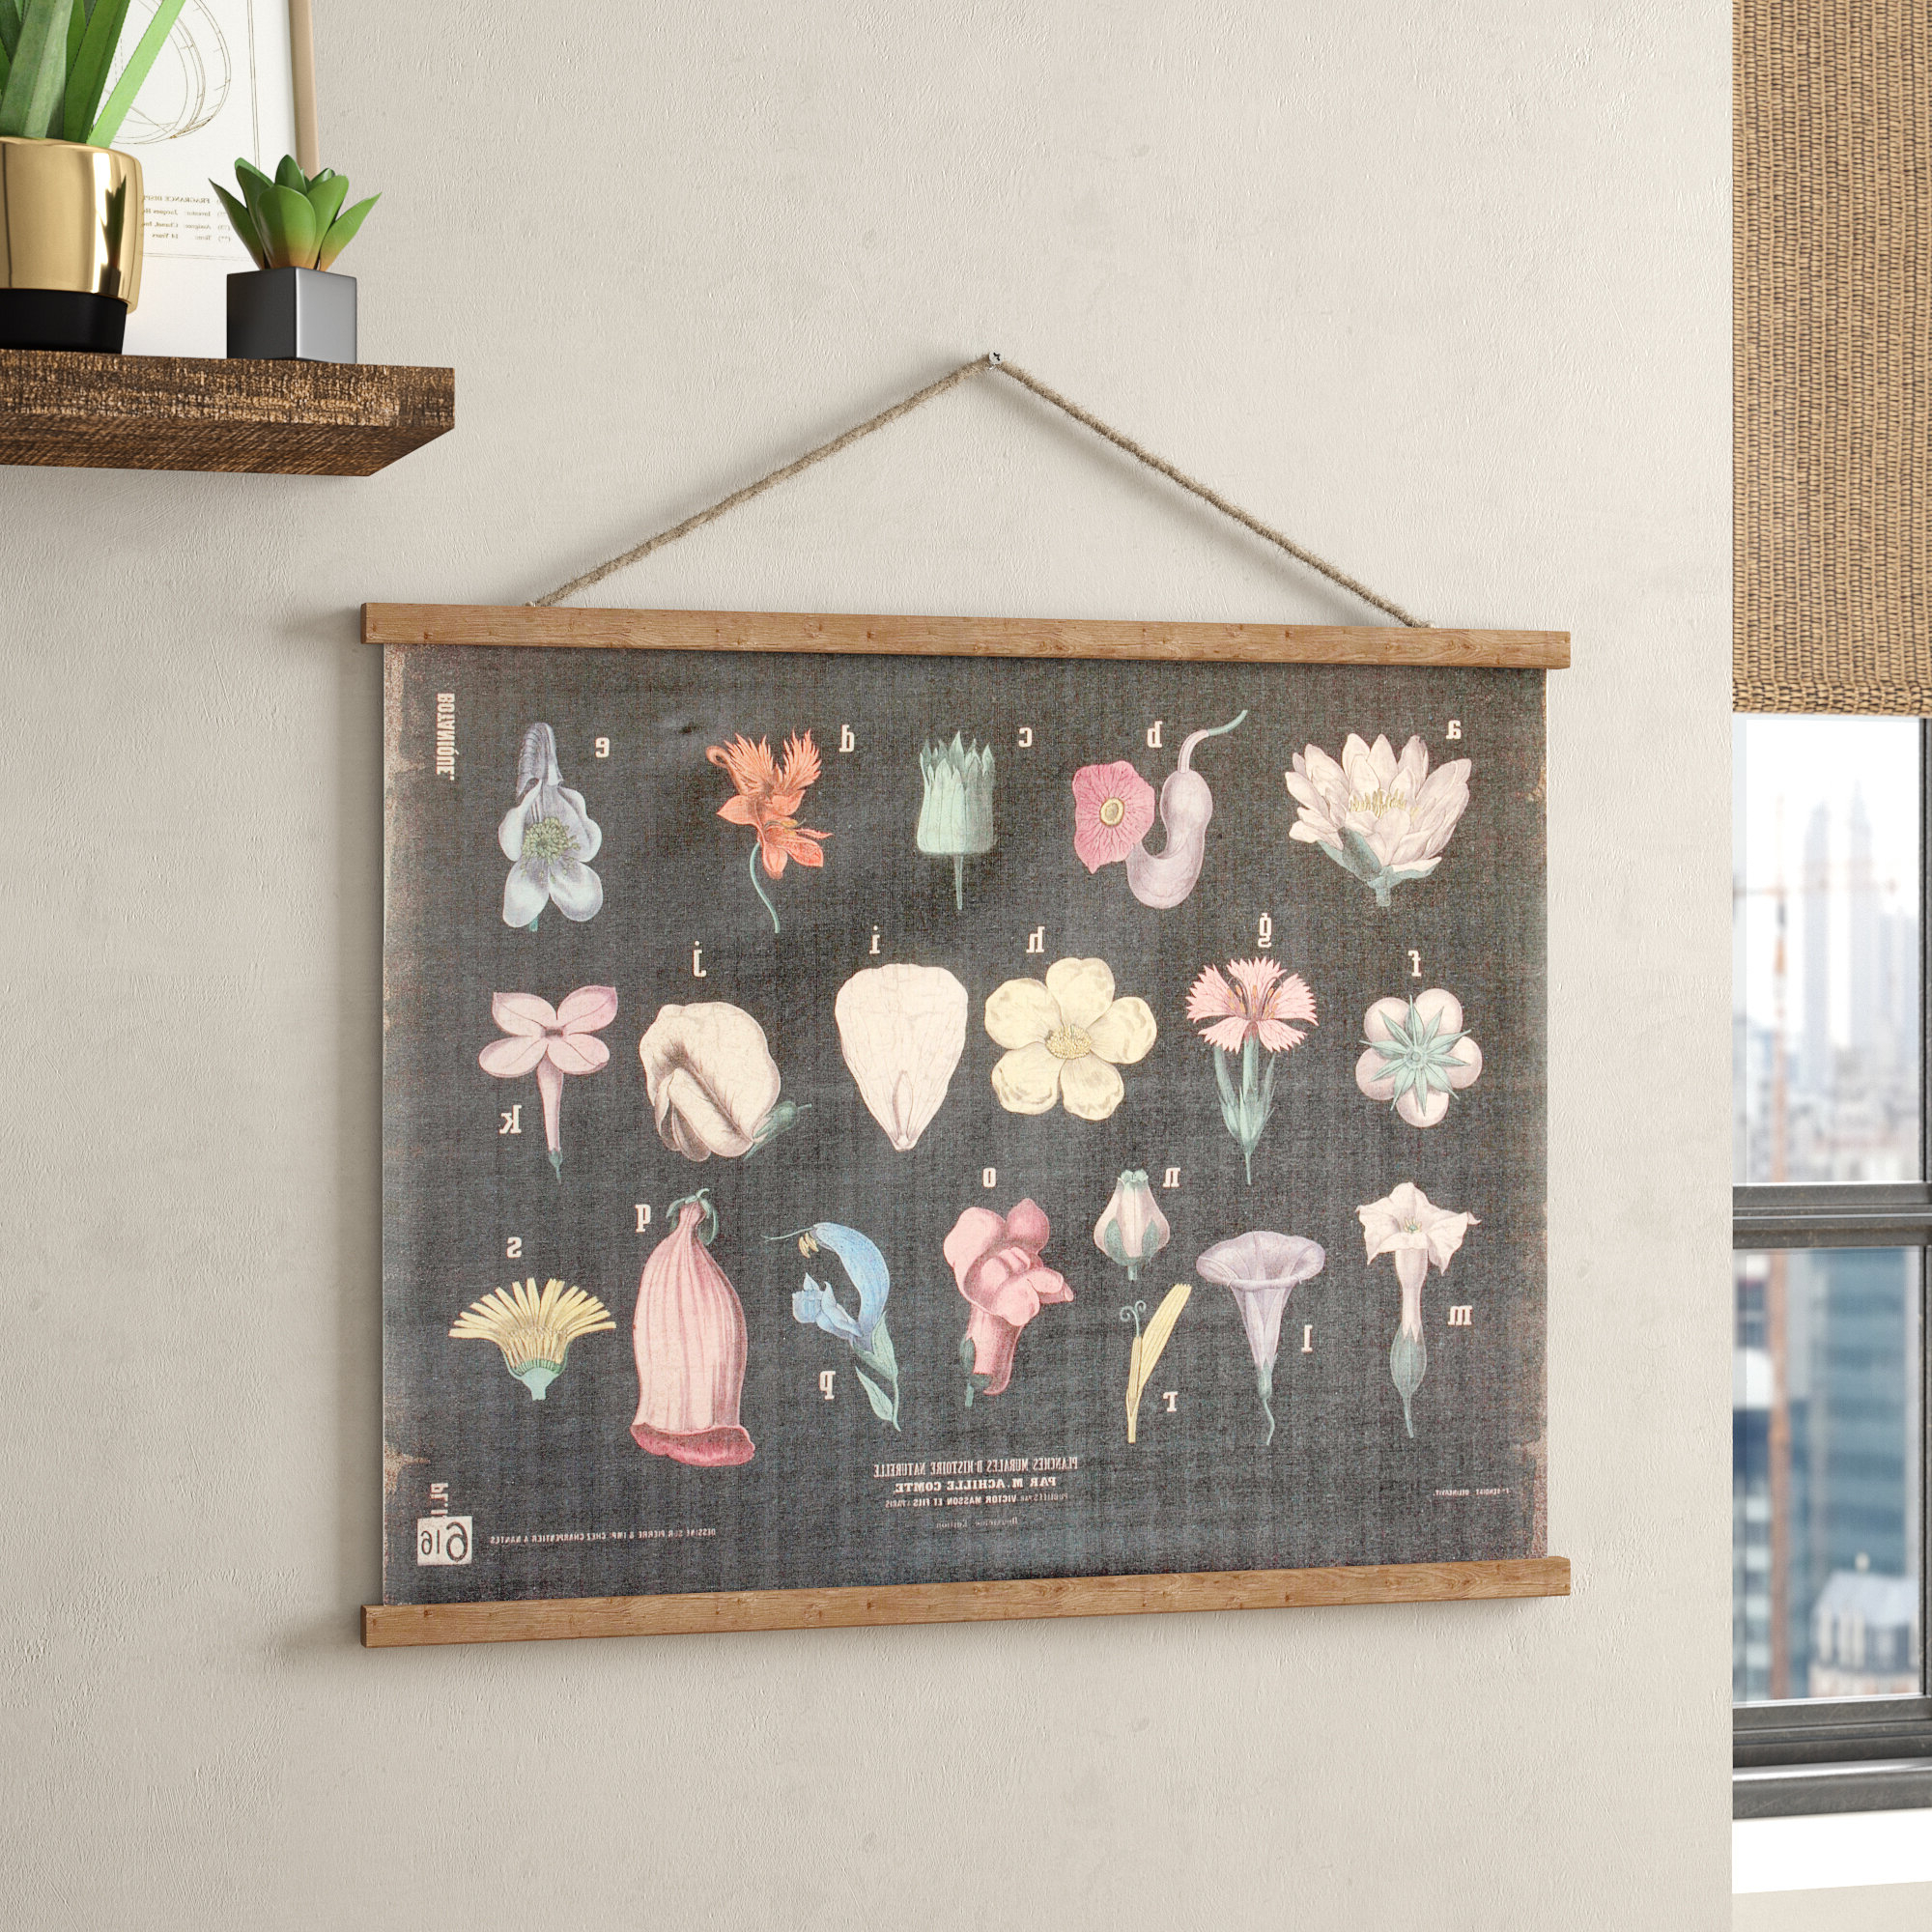 Wayfair Regarding Popular Blended Fabric Saber Wall Hangings With Rod (View 16 of 20)